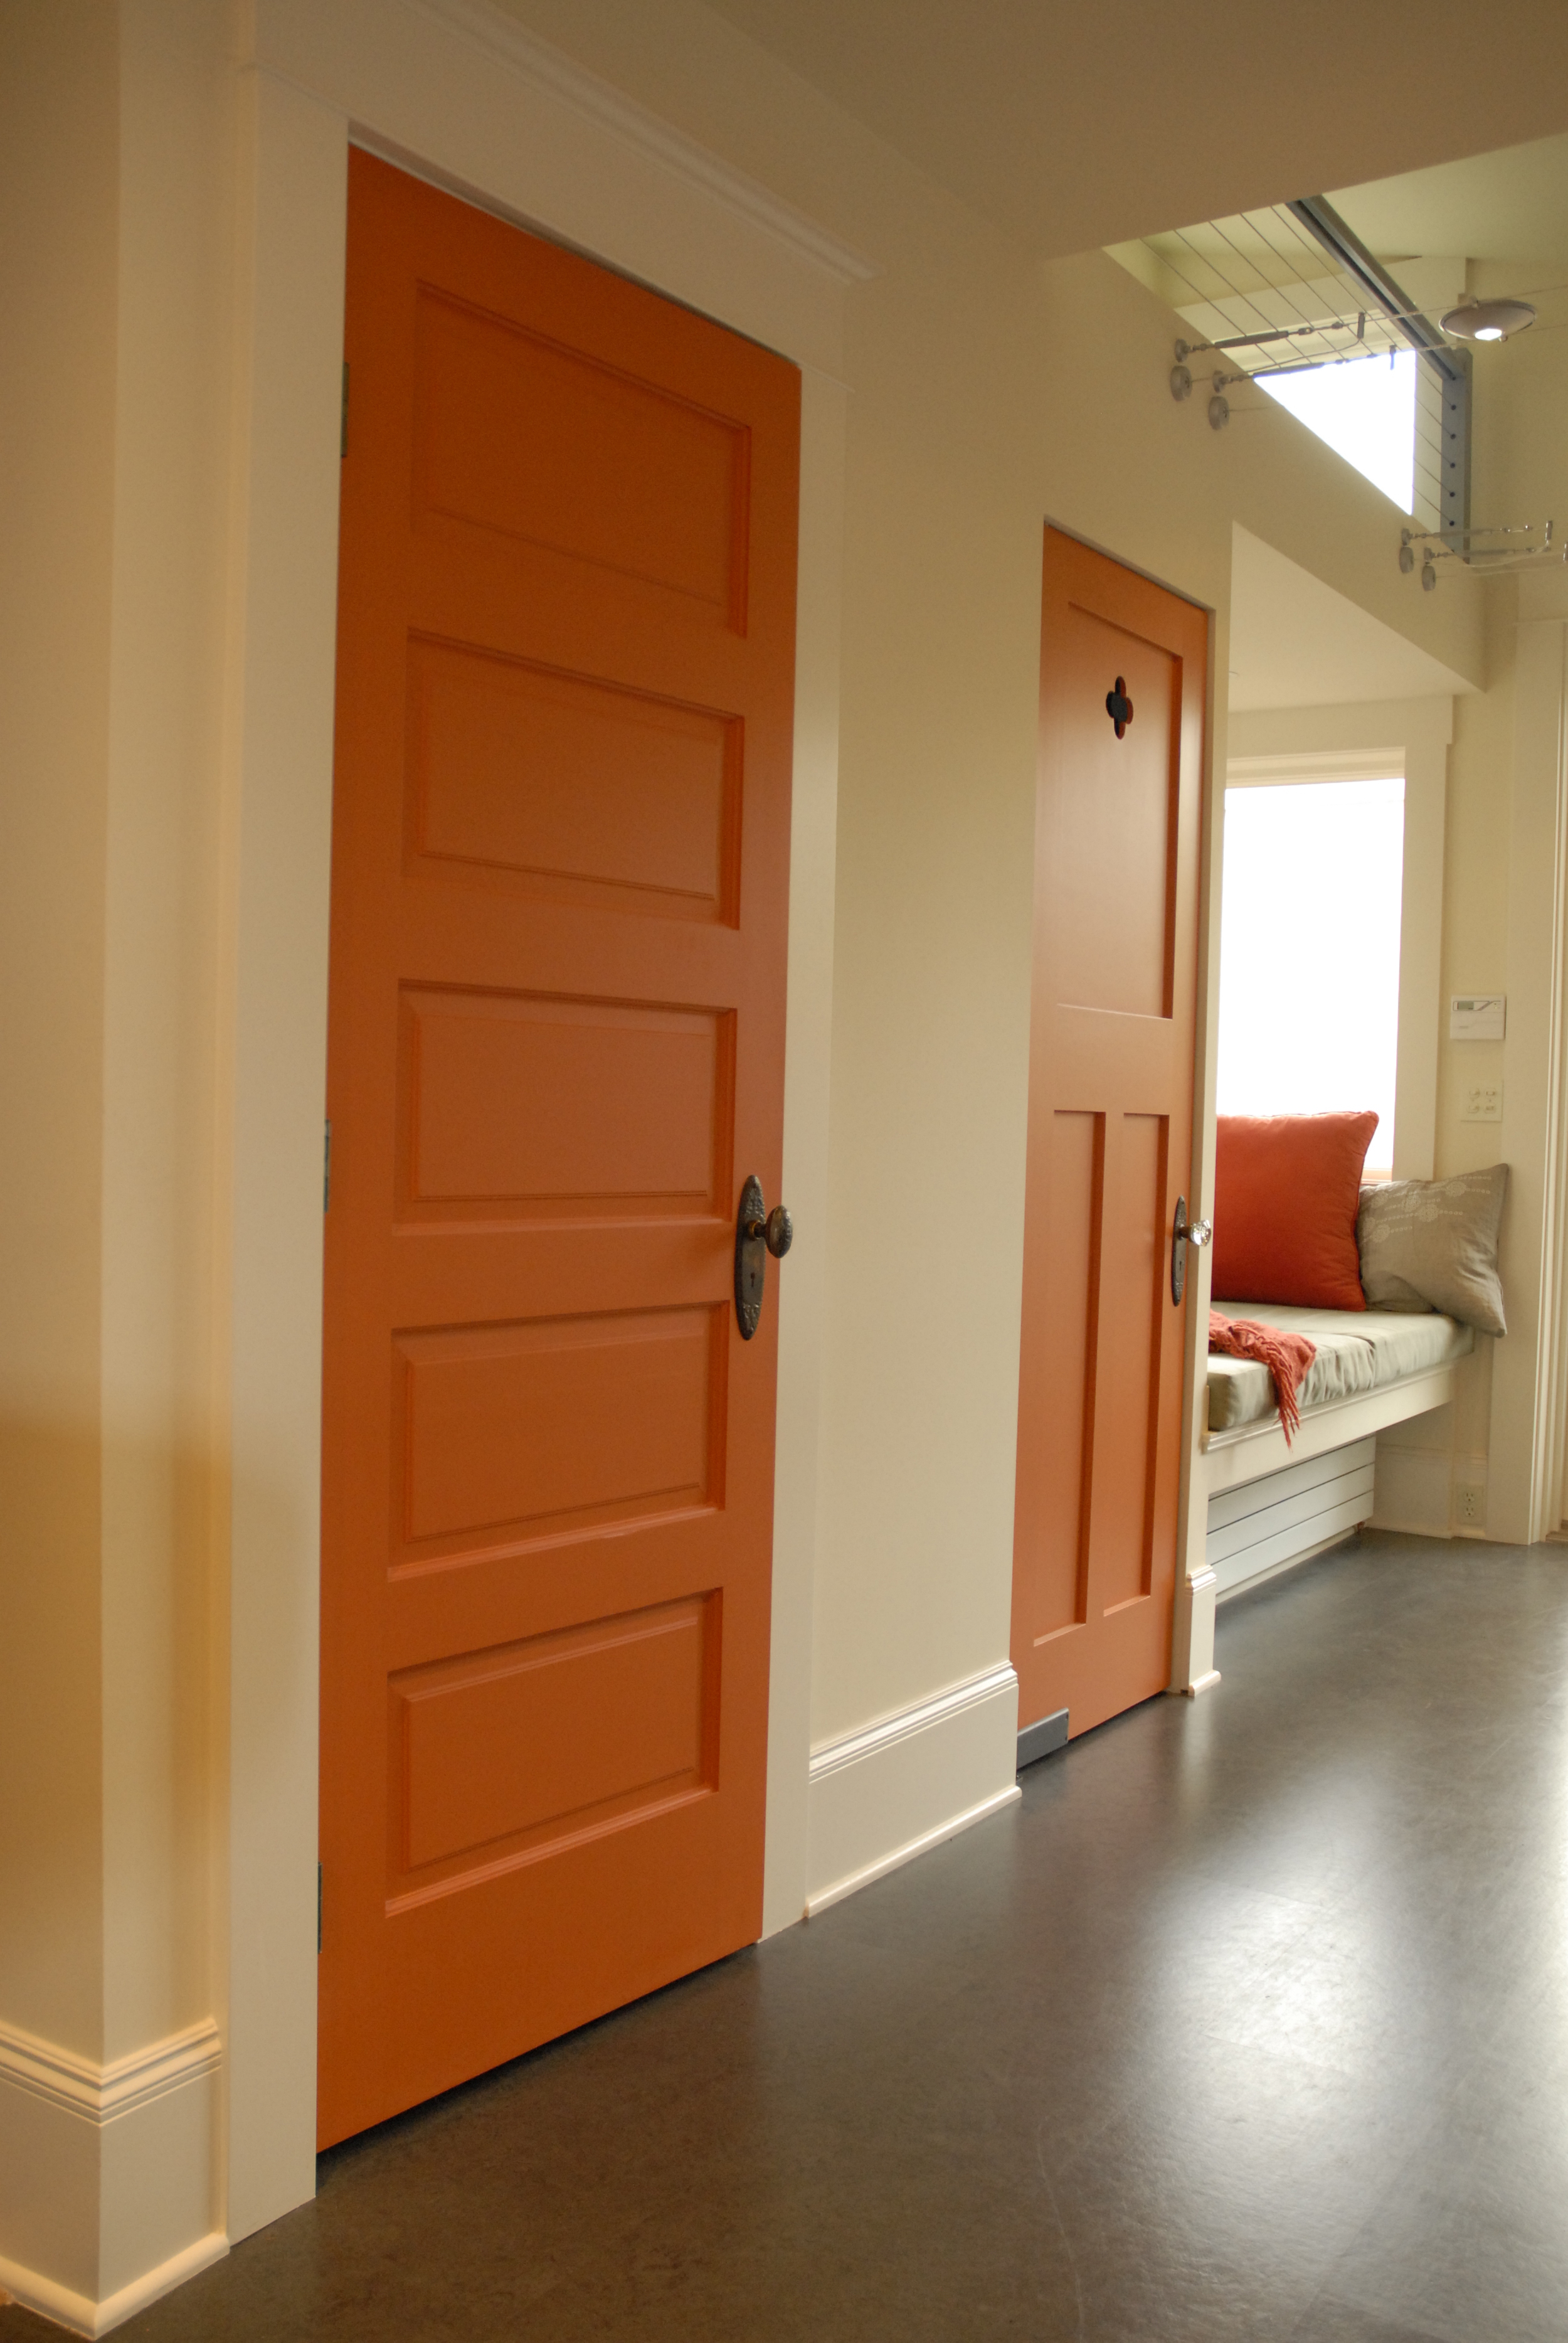 Doors are re-purposed from an old convent